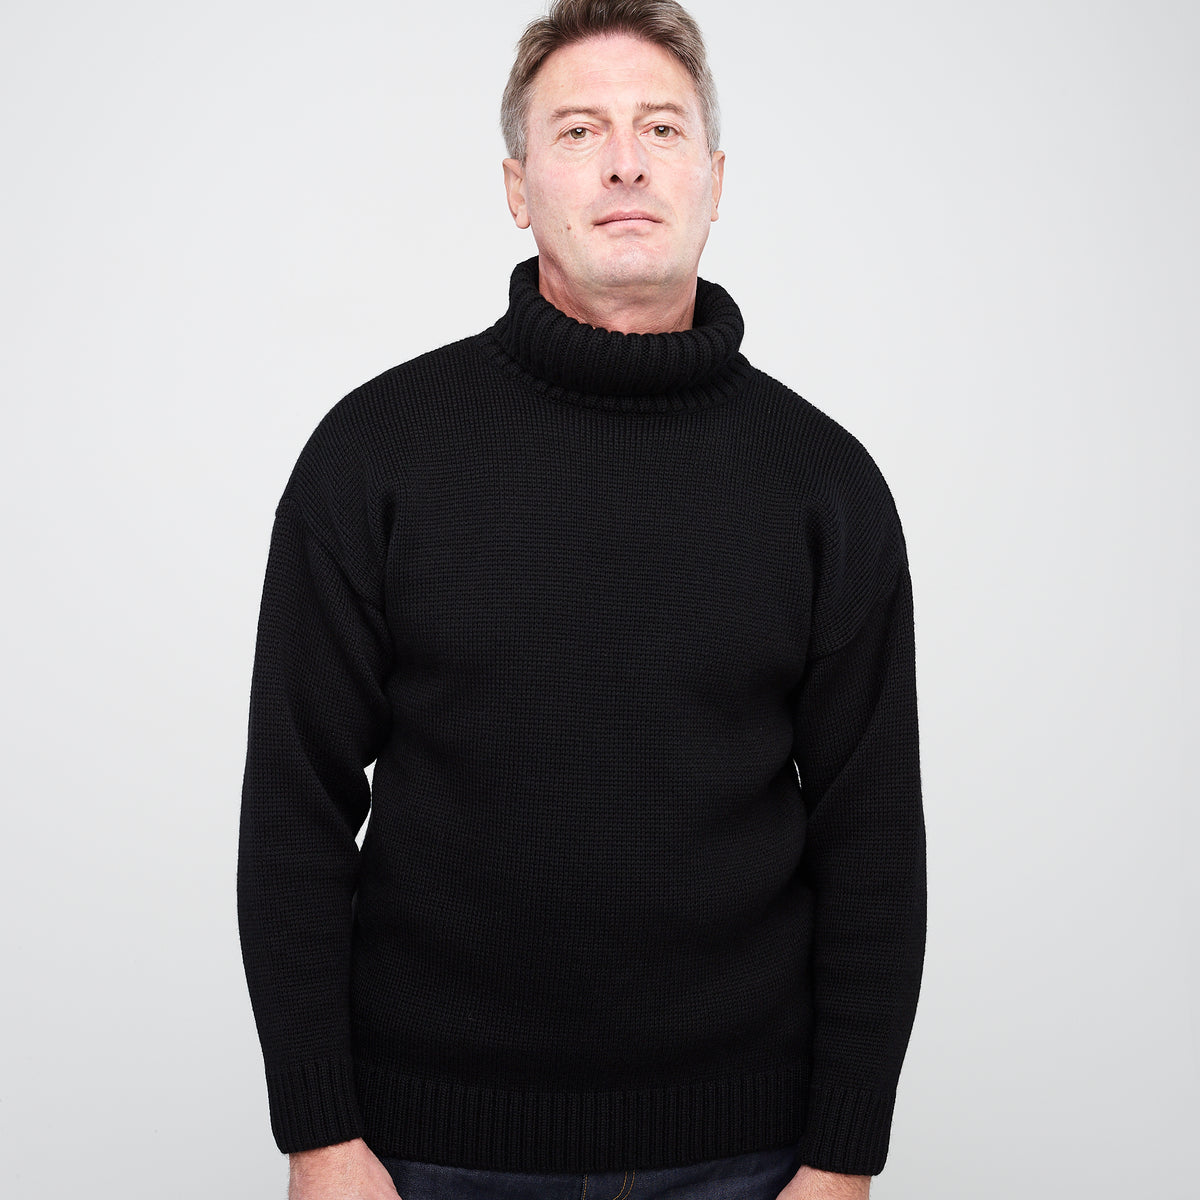 Merino Submariner Jumper Black - Community Clothing